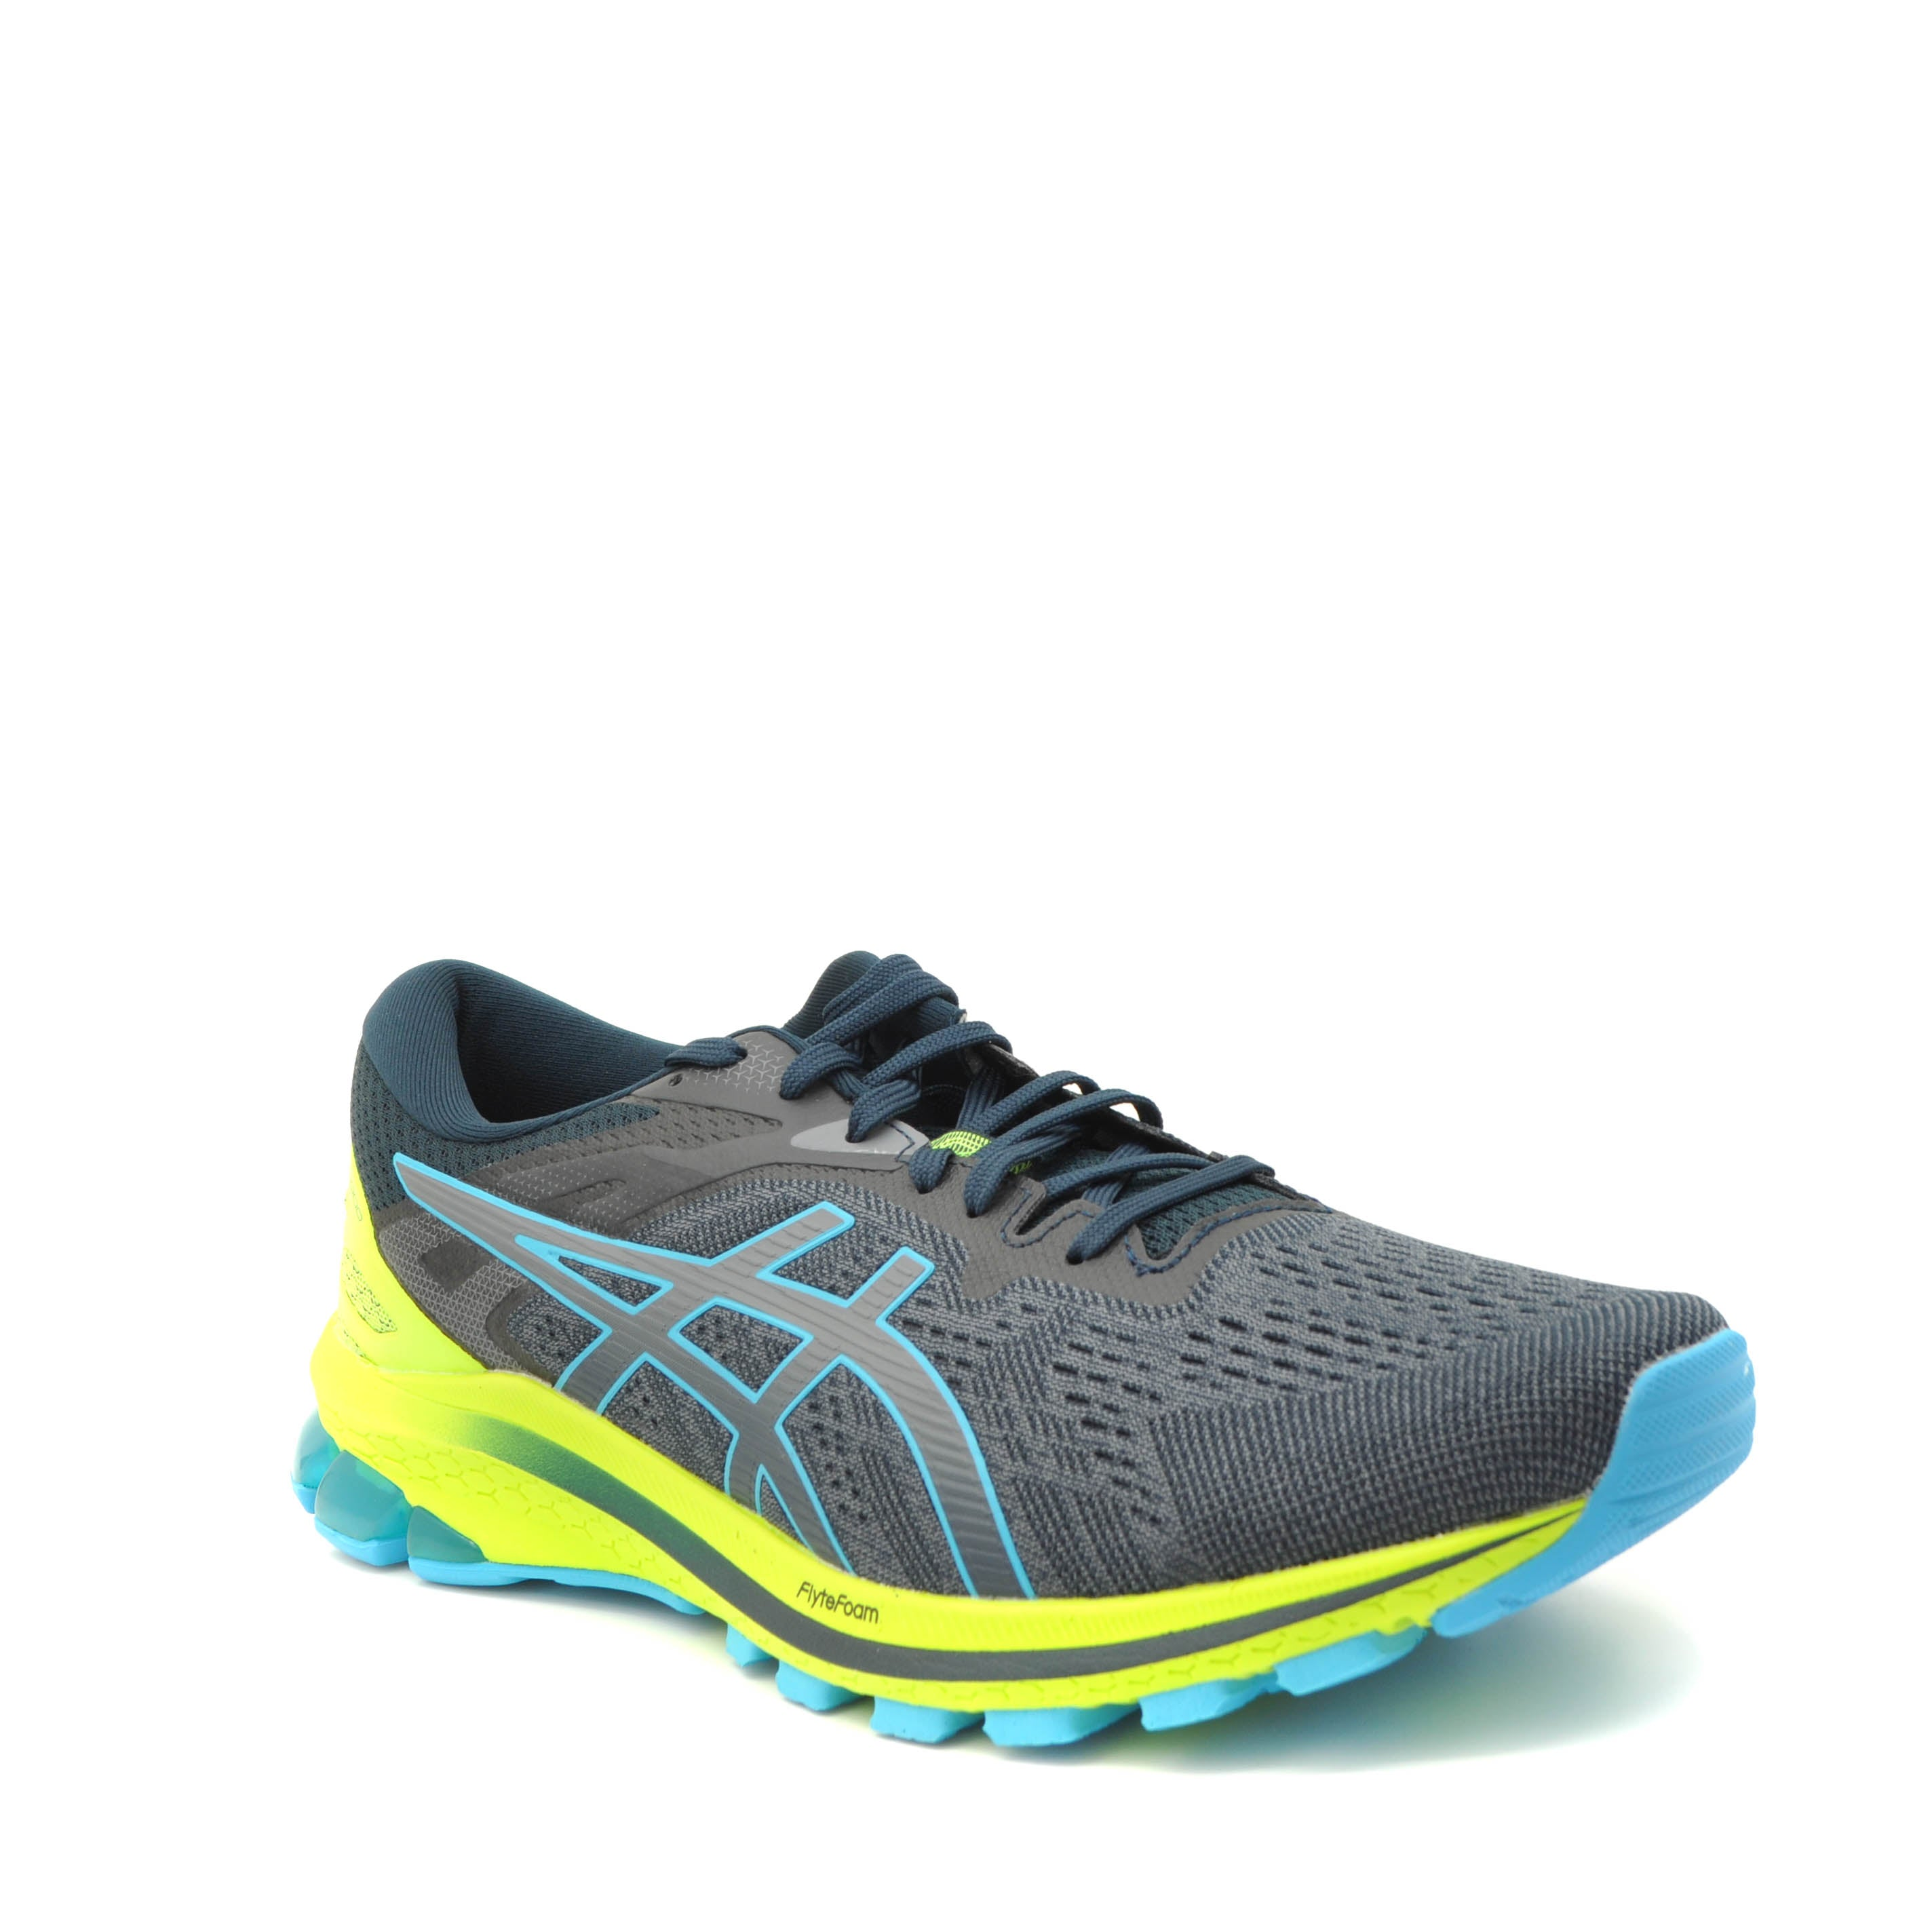 asics mens shoes navy